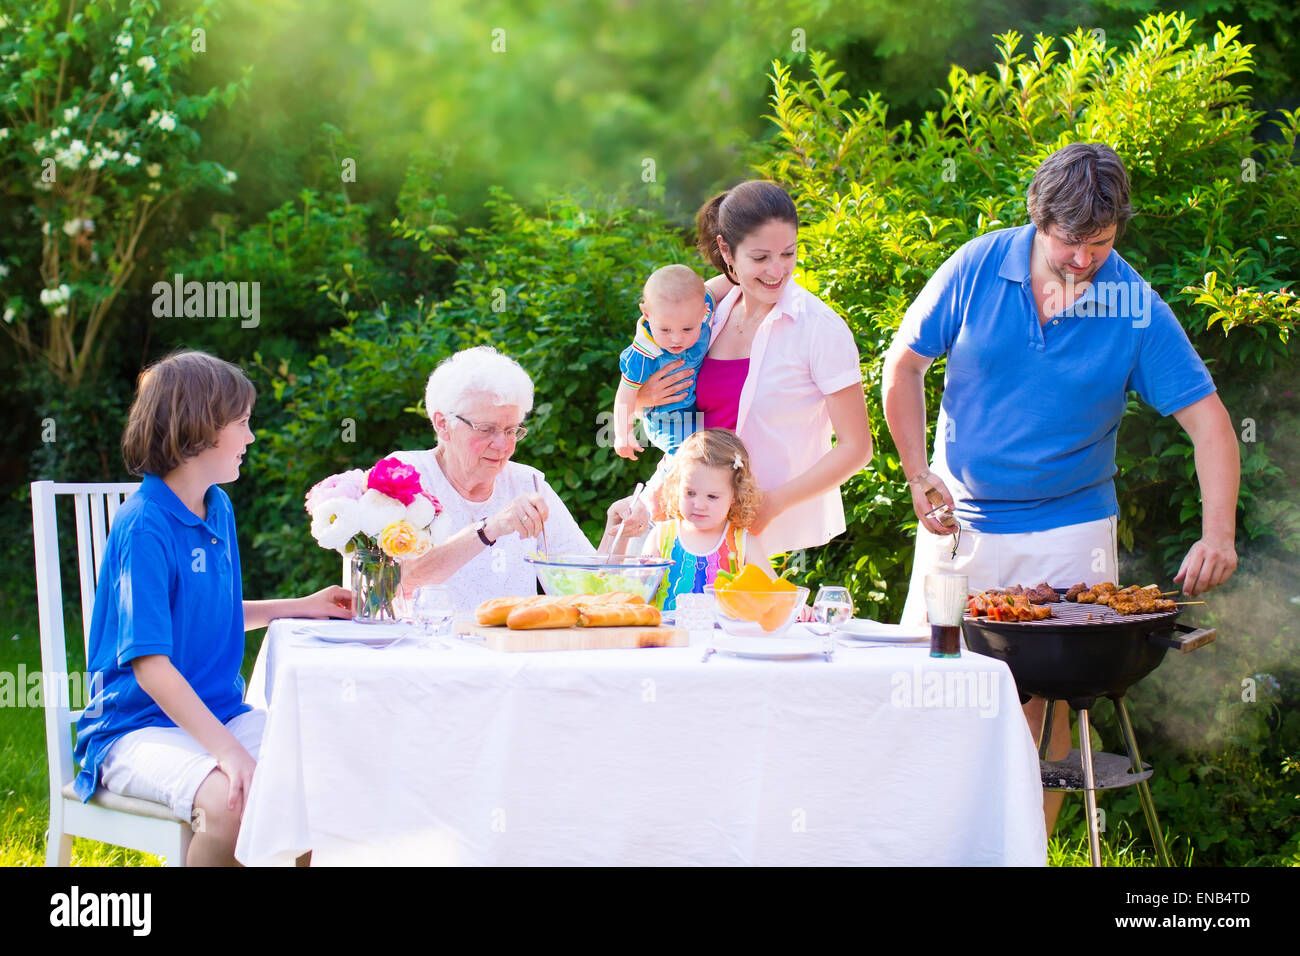 Grill barbecue backyard party. Happy big family enjoying BBQ lunch with grandmother - Stock Image